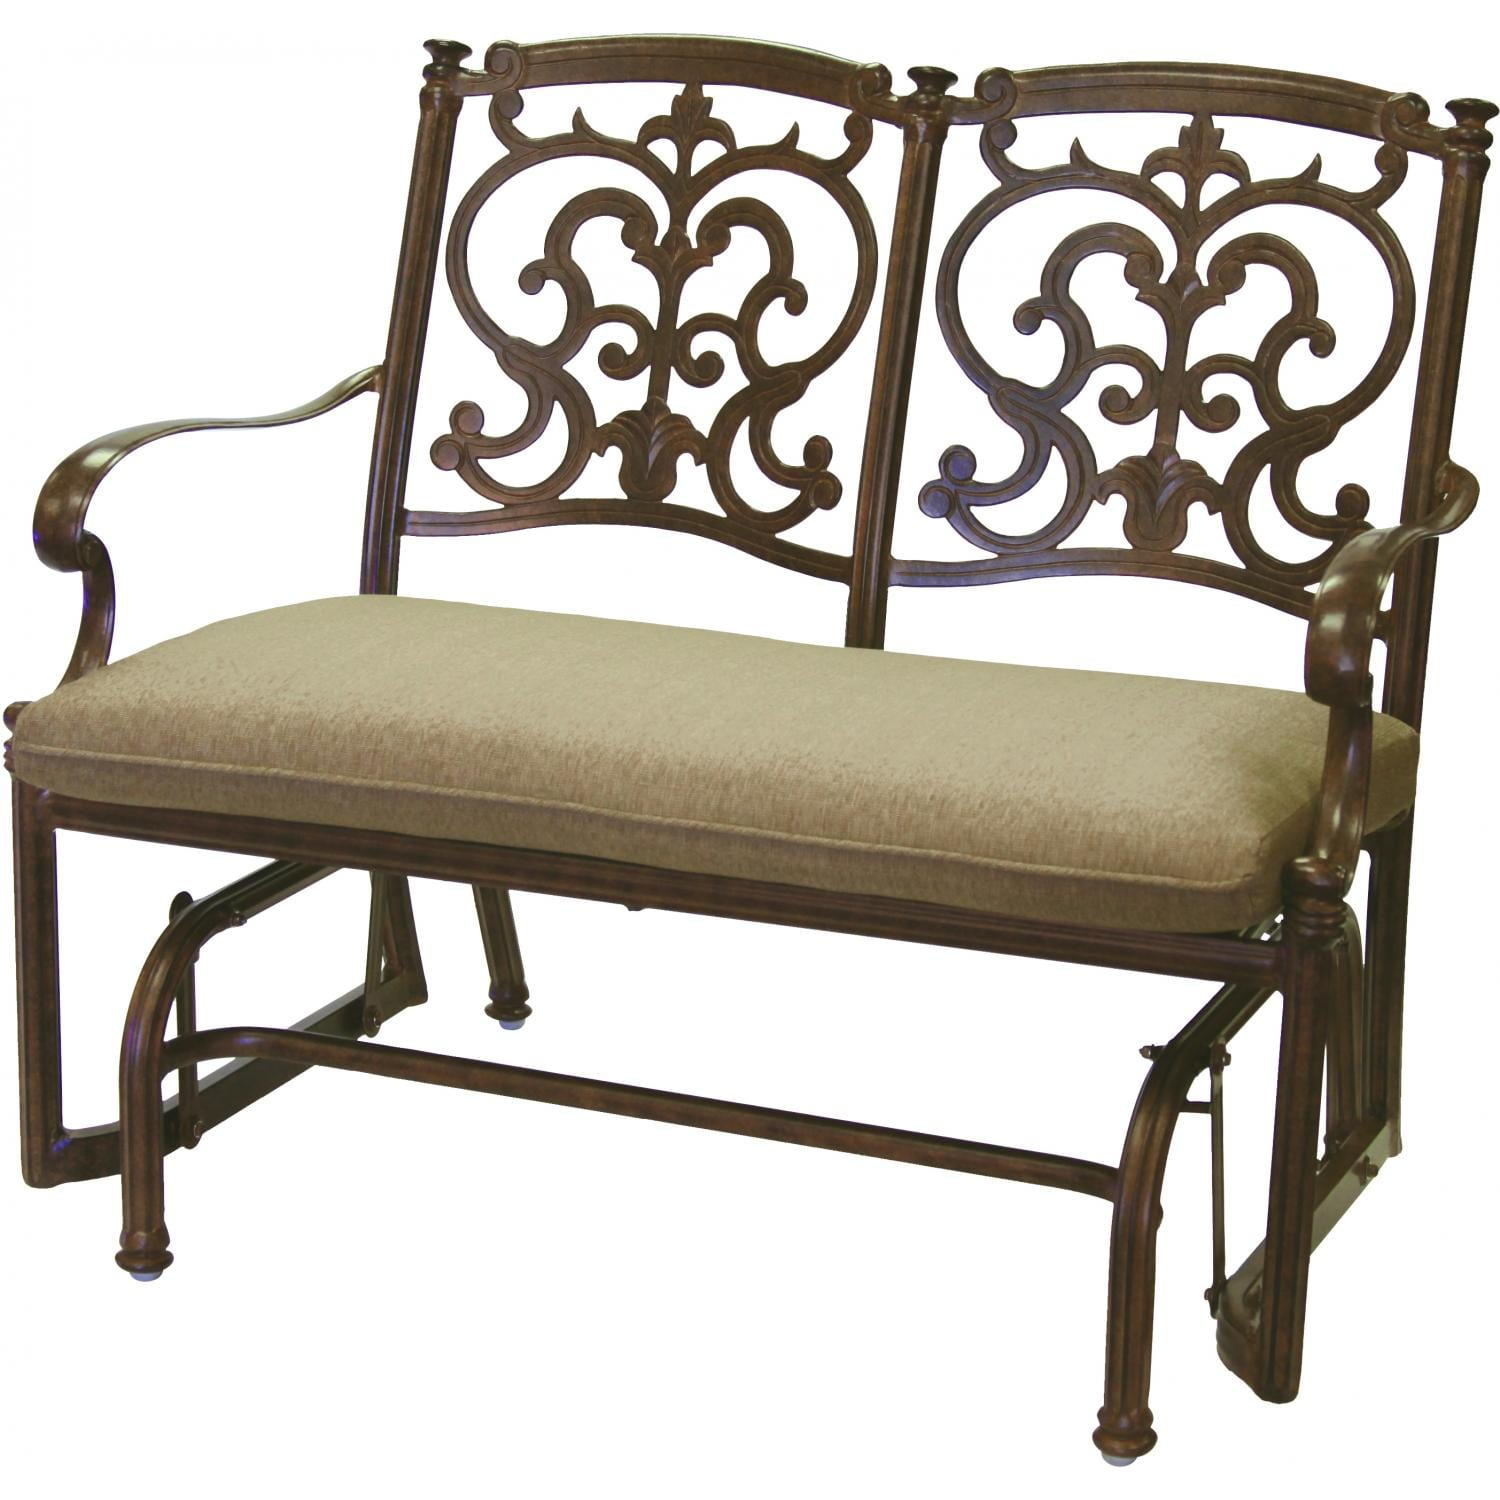 Darlee Santa Barbara Patio Bench Glider